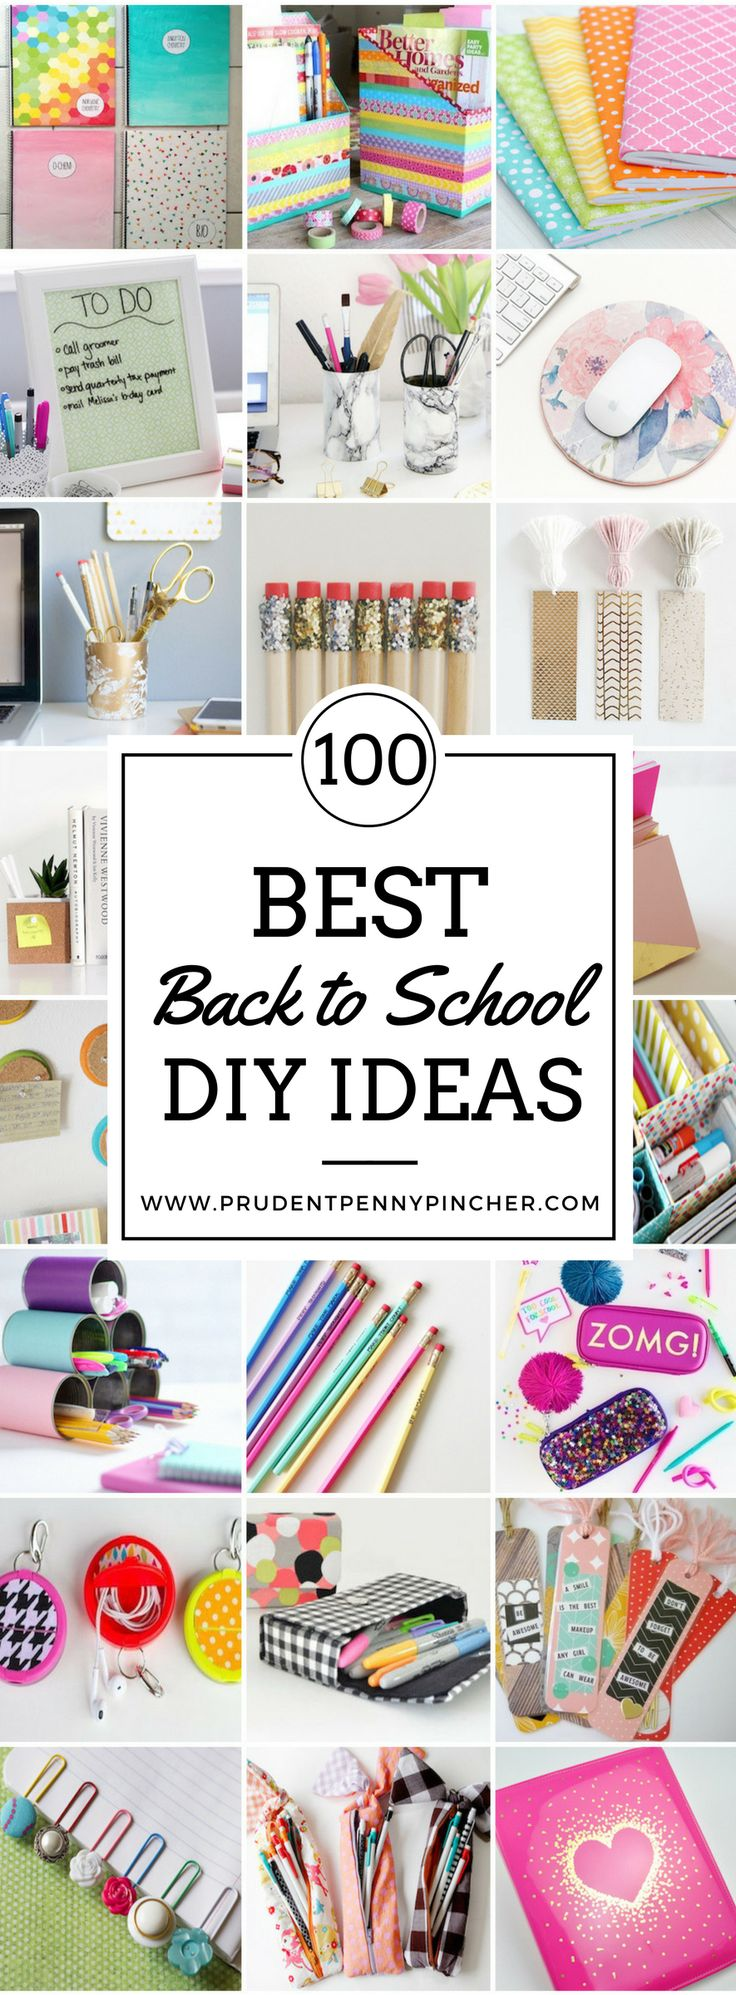 back to school diy ideas - CHALKBOARD NOTEBOOK